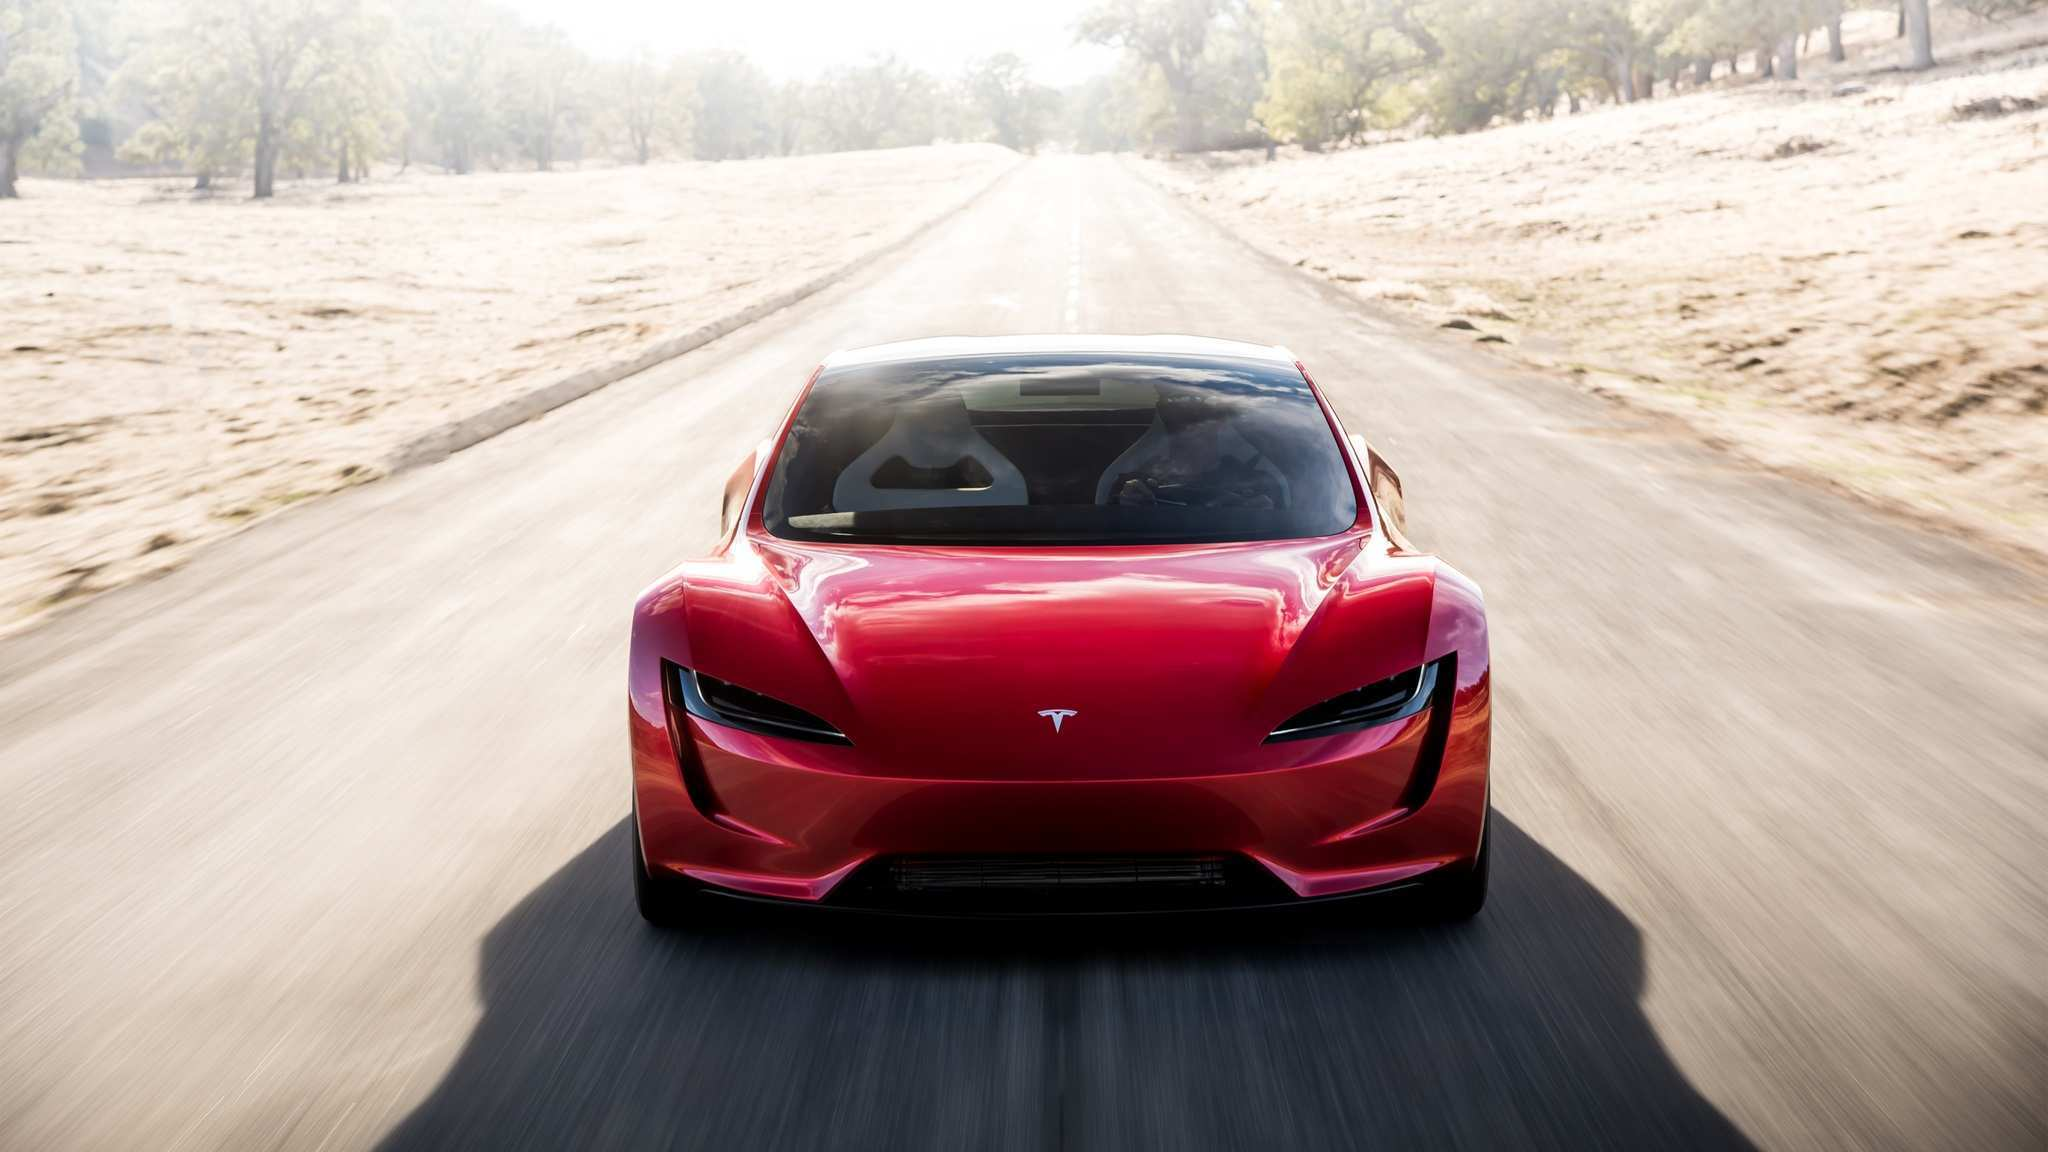 30 Best Review 2020 Tesla Roadster Battery Picture for 2020 Tesla Roadster Battery